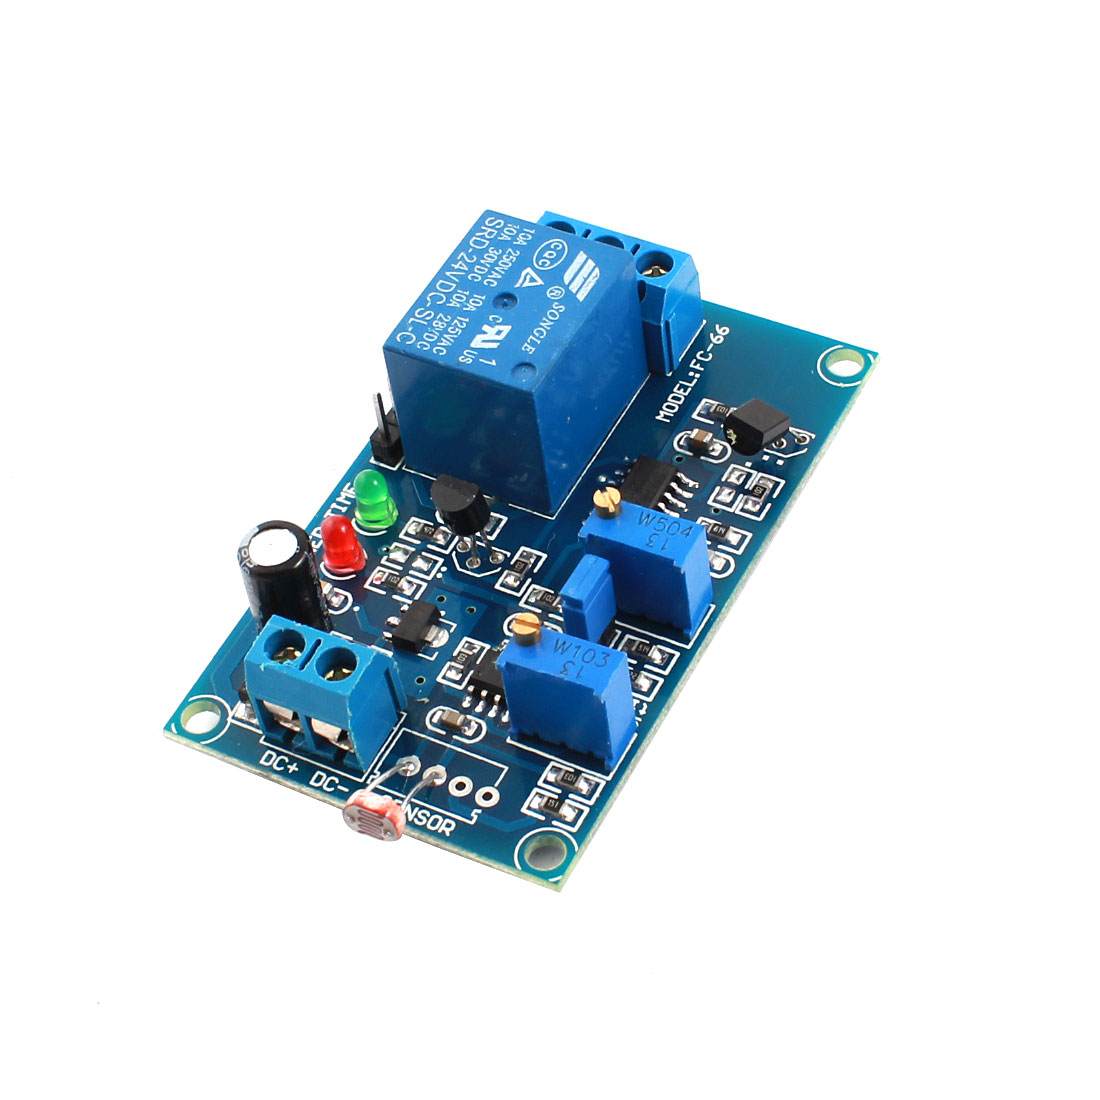 DC24V 2-LED Lamp 1CH Photovaristor Diode Non-light Operation Time Delay PCB Board Relay Module